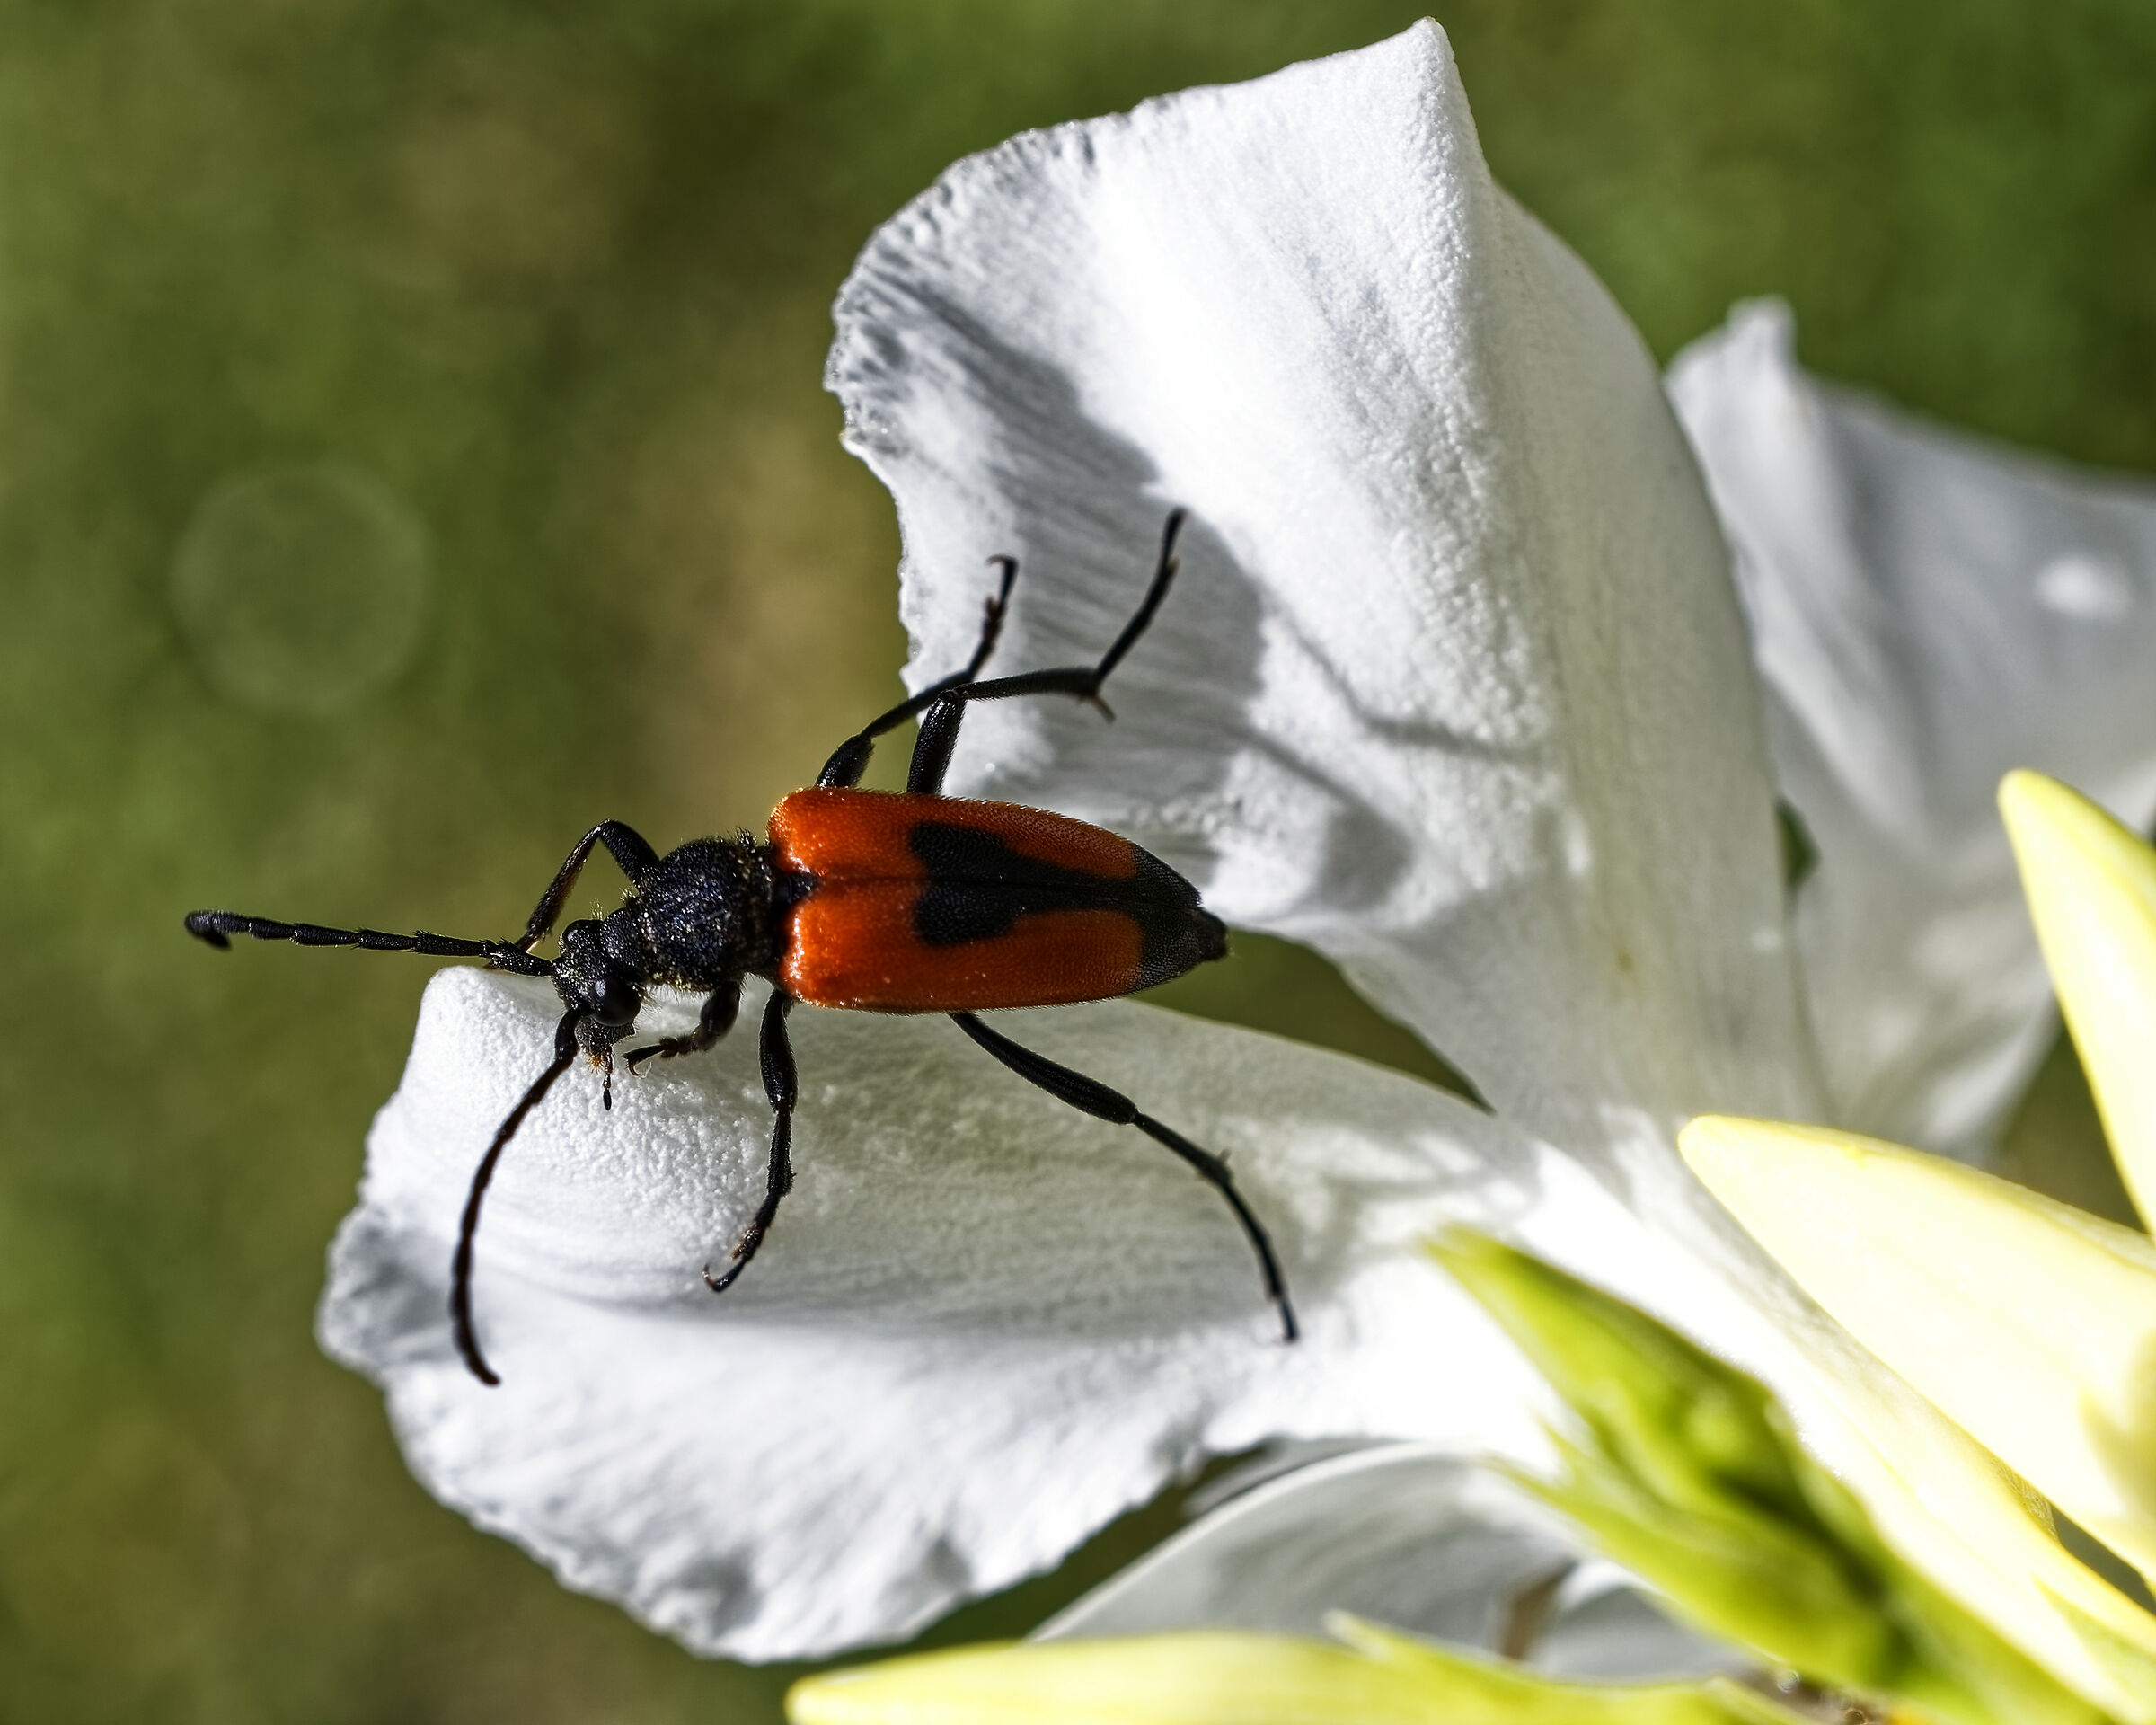 an unexpected guest (red beetle)...